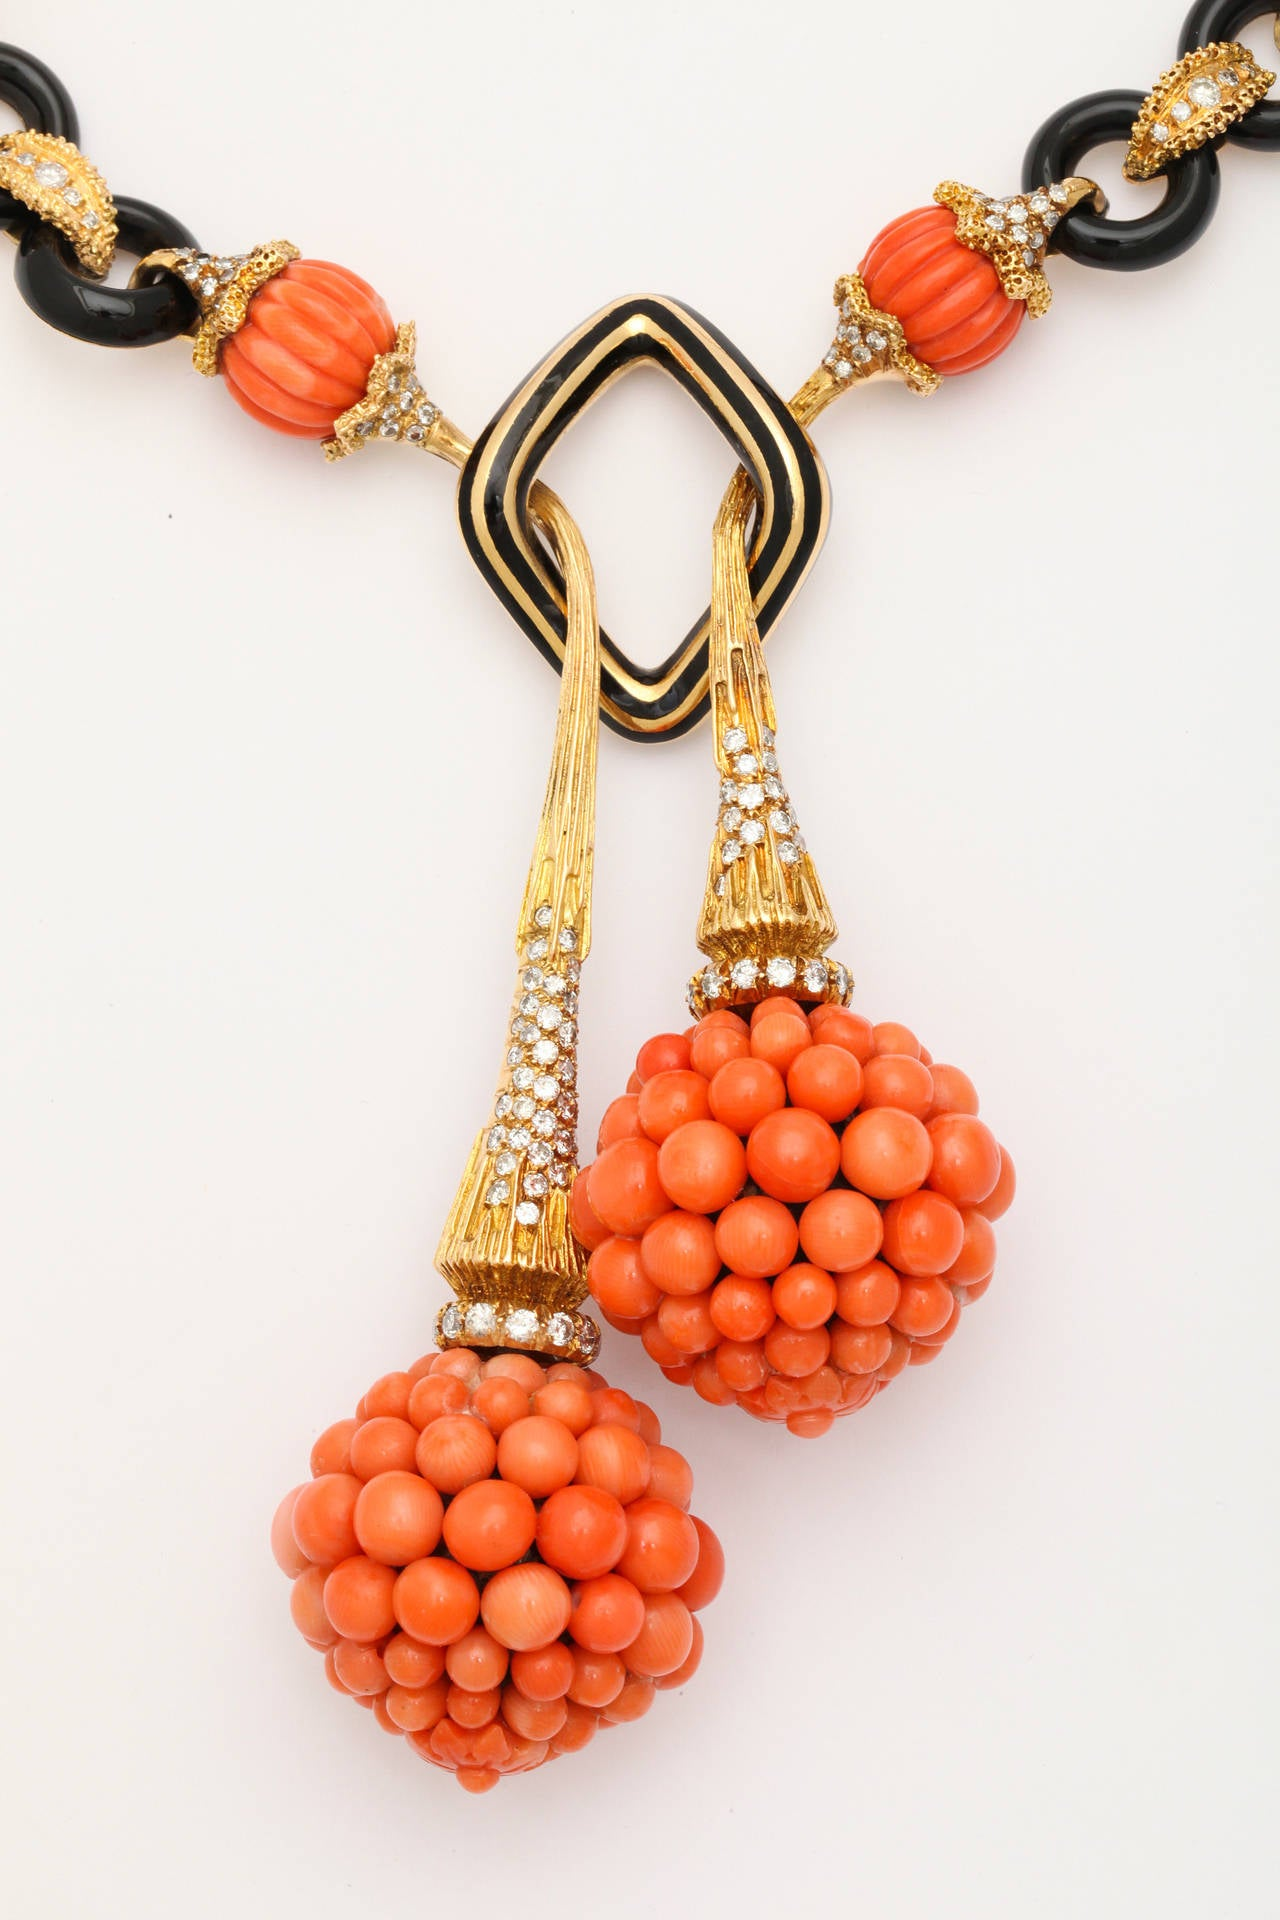 Coral jewelry is extremely fragile as it is made of the calcified remains of microscopic animals. It can be polished to a beautiful shine and is often set in a bezel in order to protect the edges of the piece.